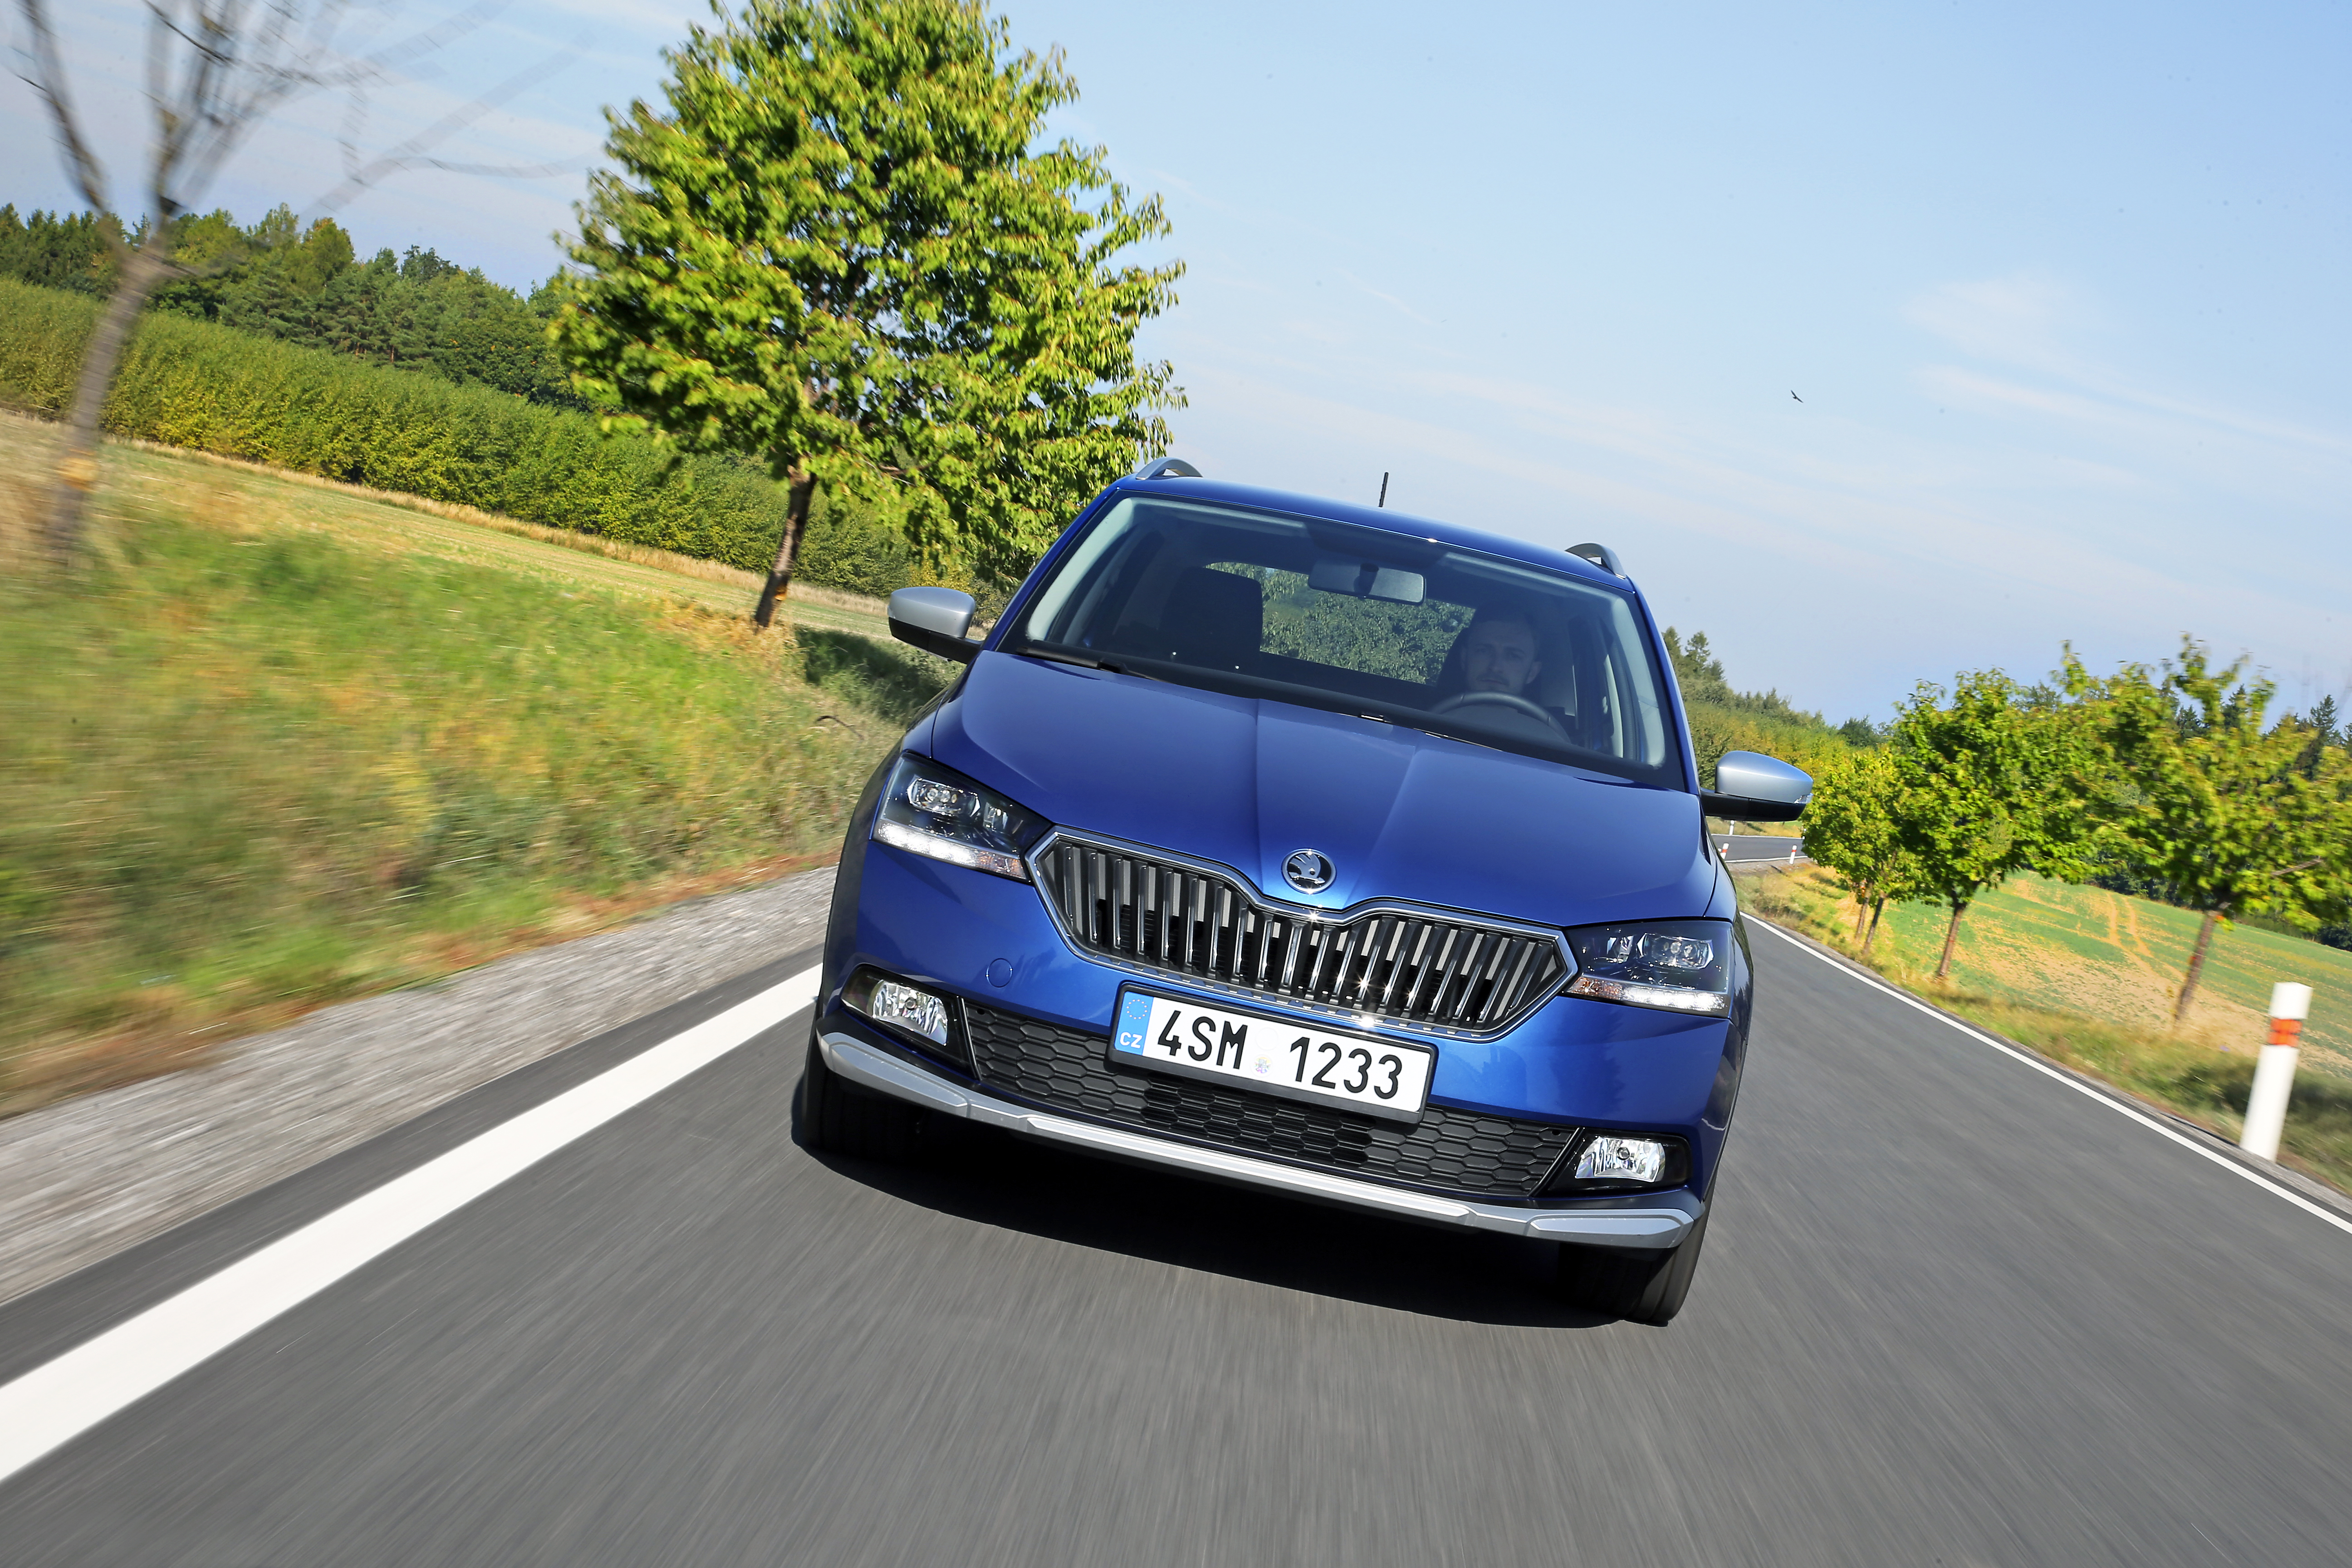 Skoda Fabia Combi Scoutline Robust Sporting Style With Off Road